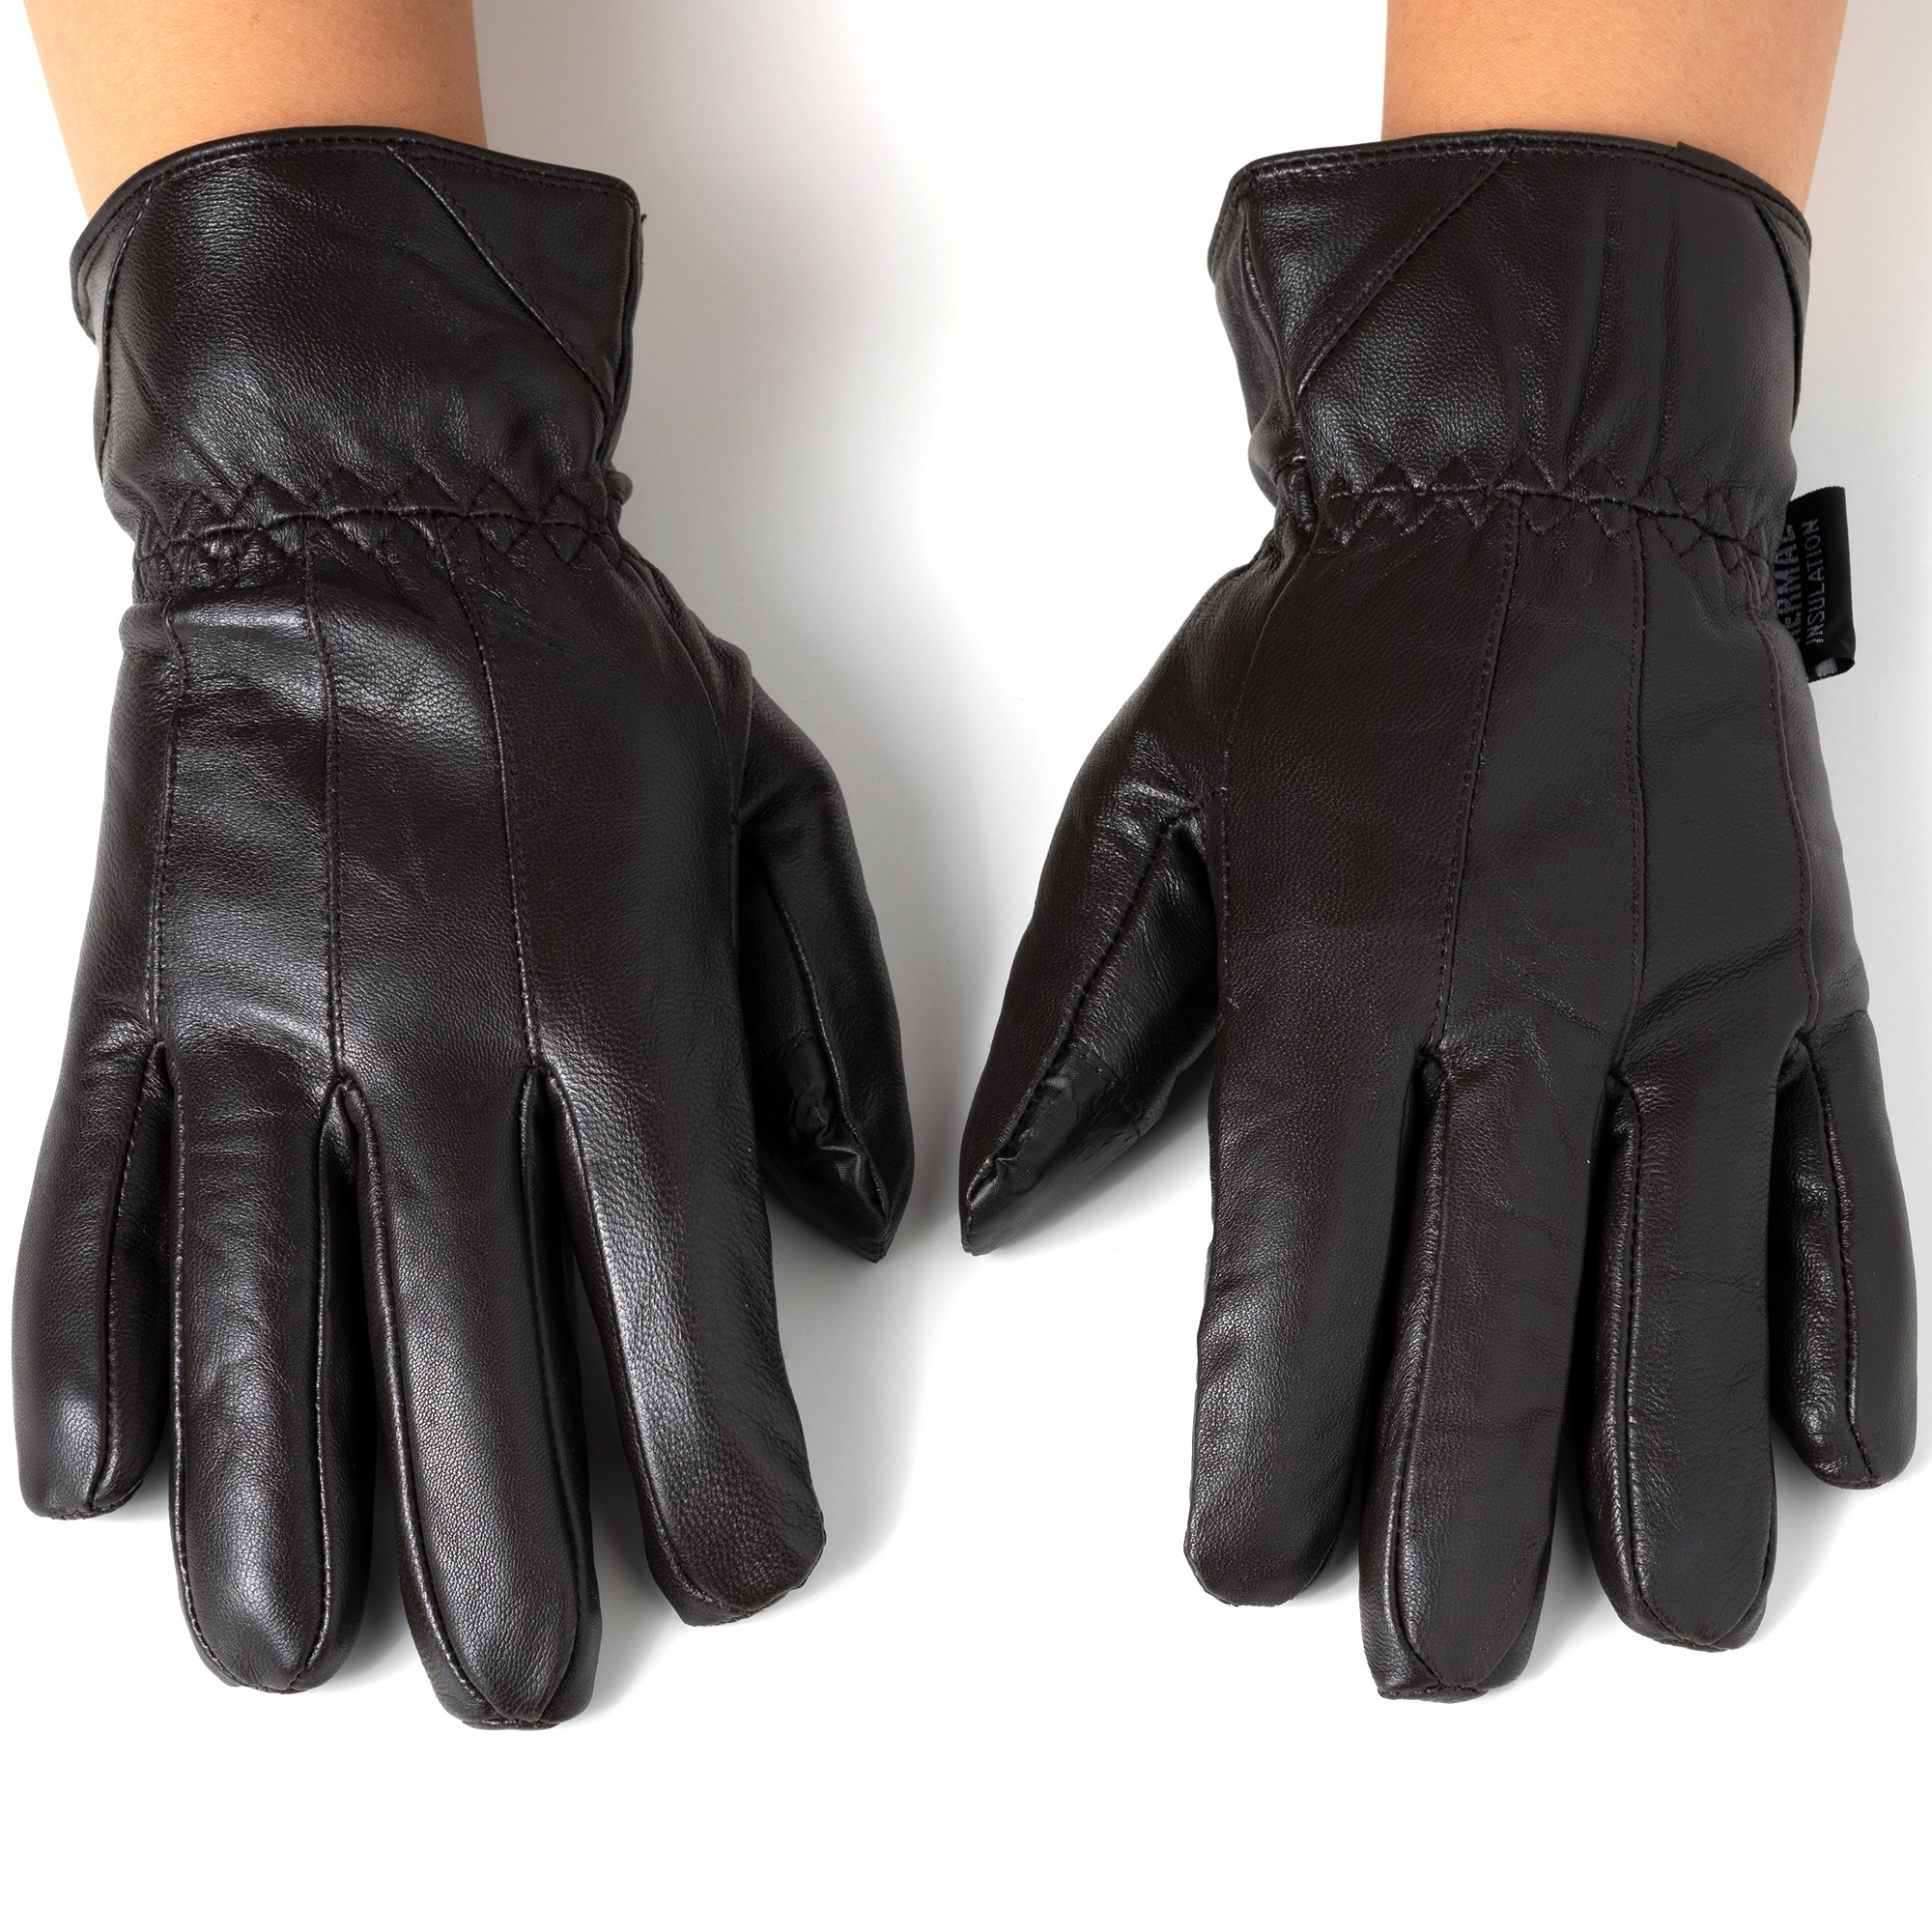 Alpine-Swiss-Mens-Touch-Screen-Gloves-Leather-Thermal-Lined-Phone-Texting-Gloves thumbnail 21